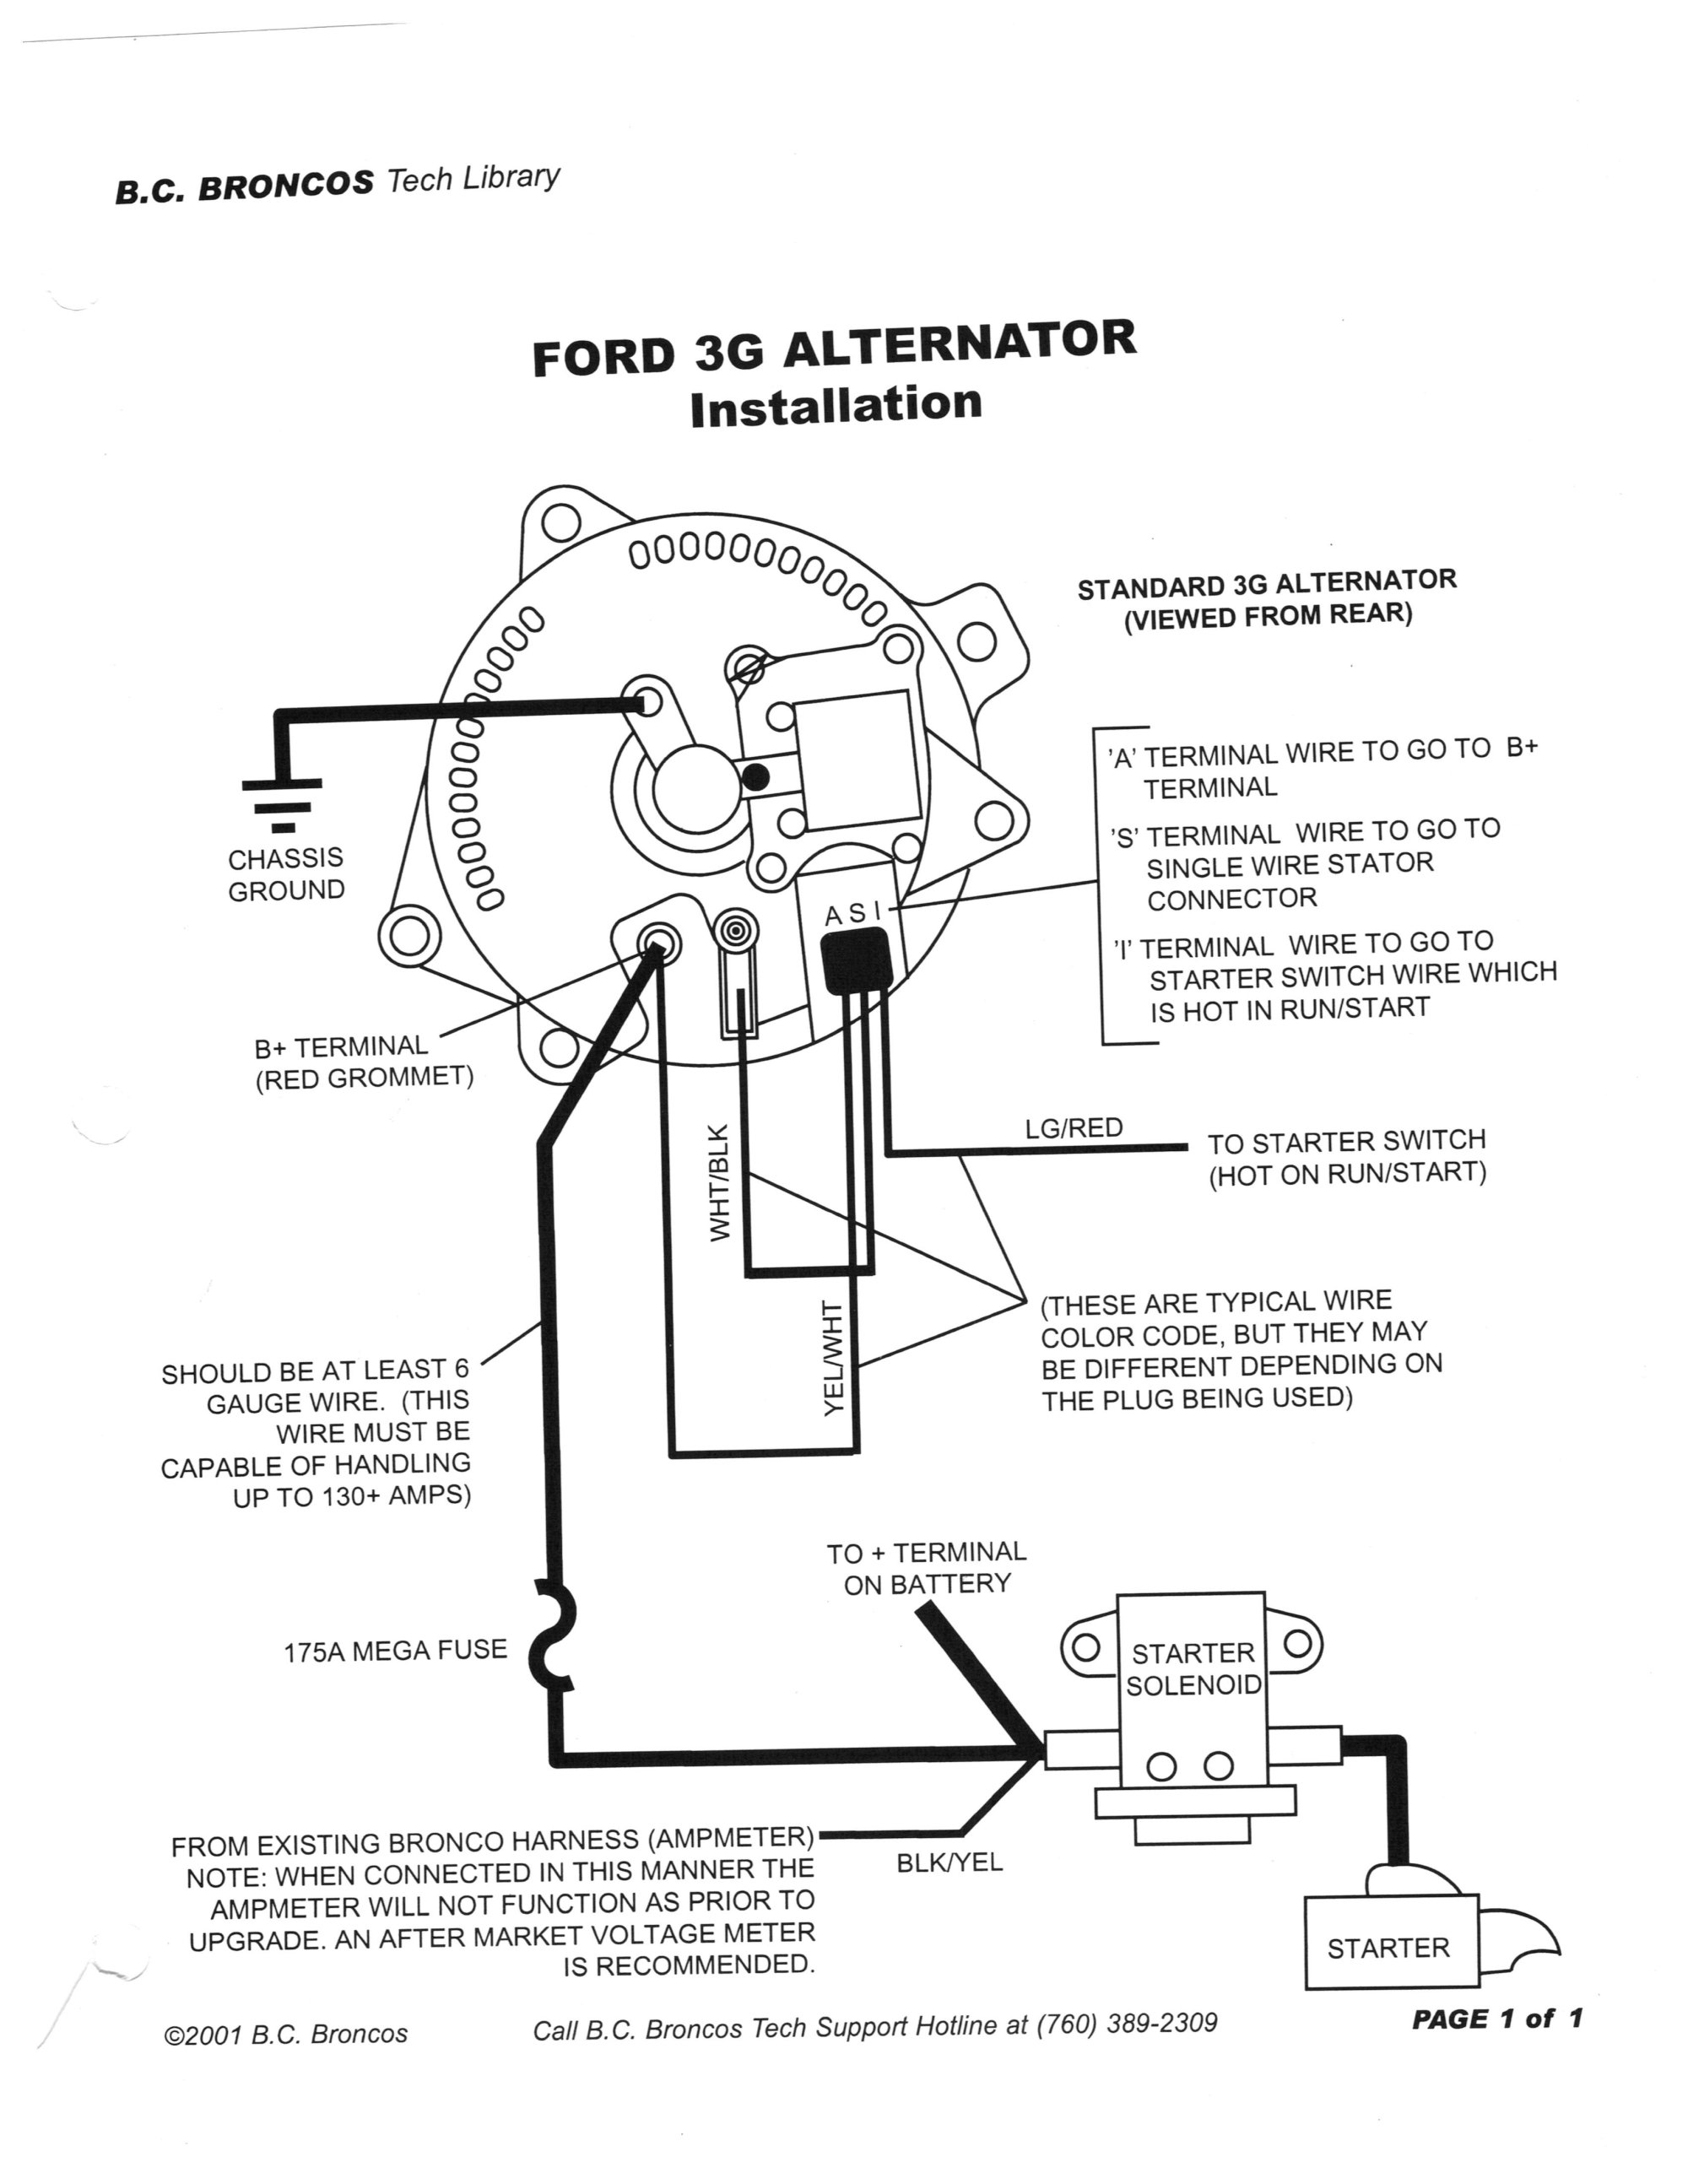 hight resolution of 1970 ford truck f600 alternator wiring diagram wiring diagram 1970 ford f100 alternator wiring diagram wiring